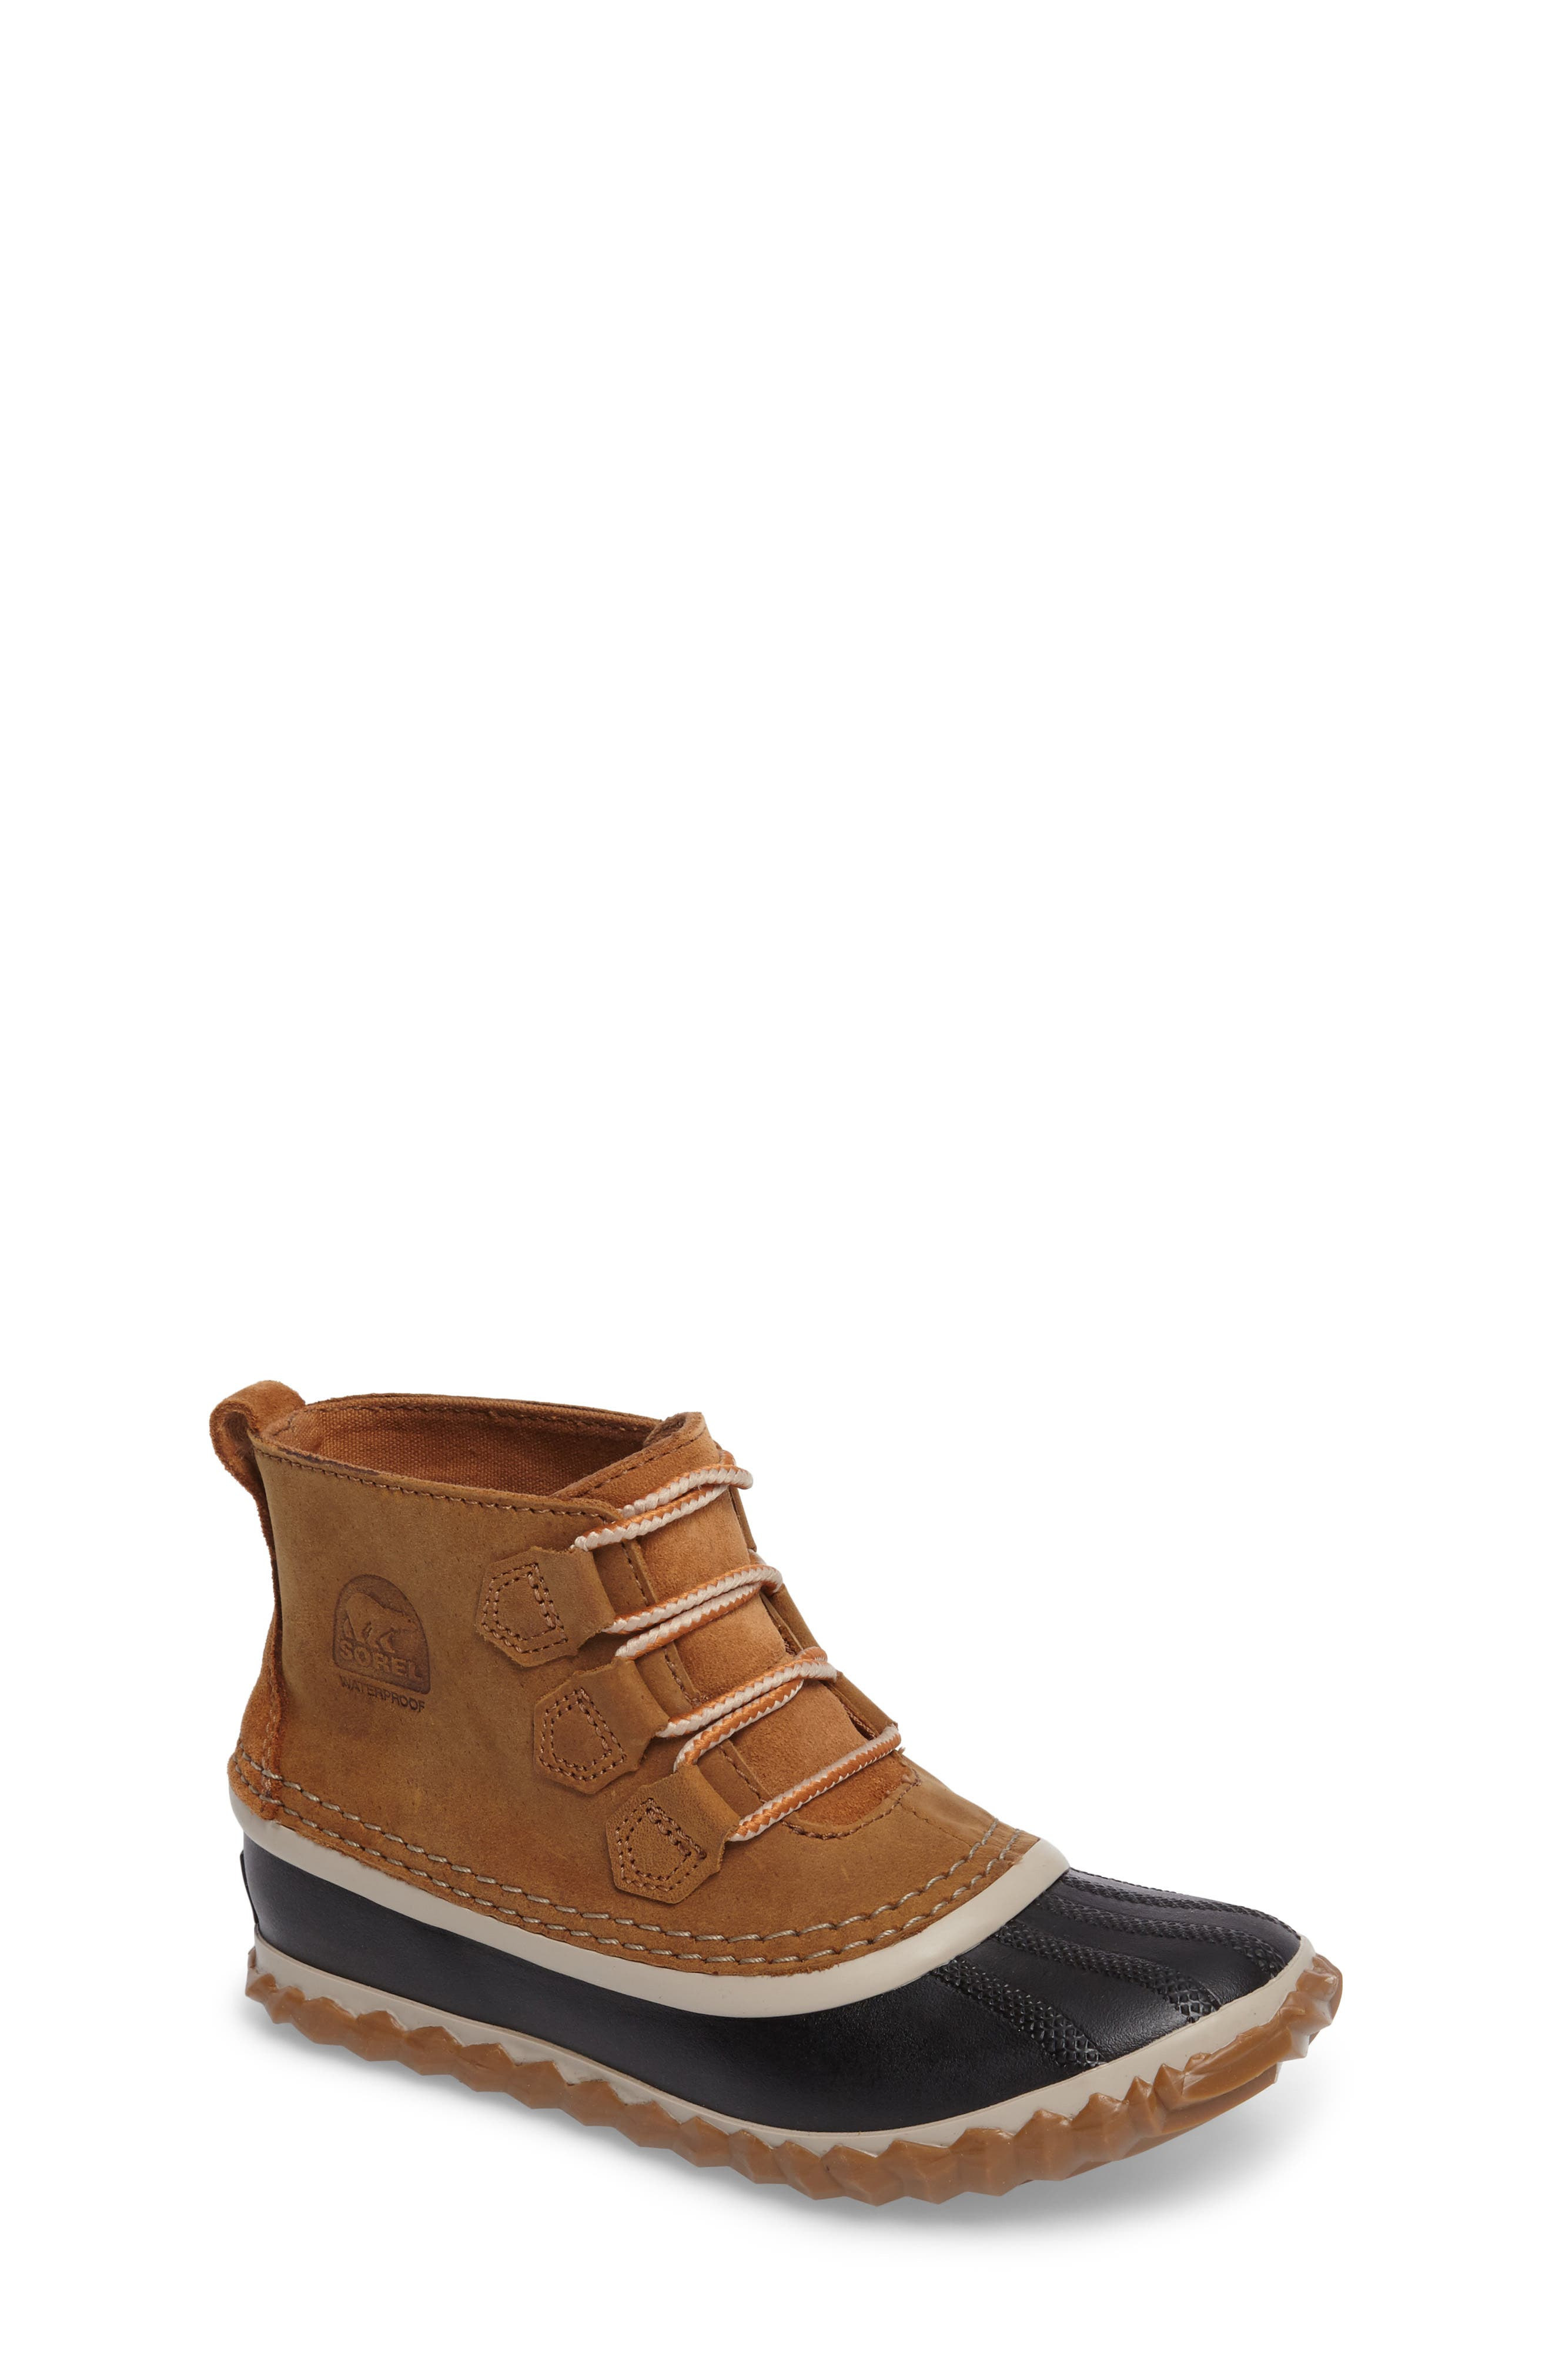 Out 'N About<sup>®</sup> Waterproof Boot,                             Main thumbnail 1, color,                             200